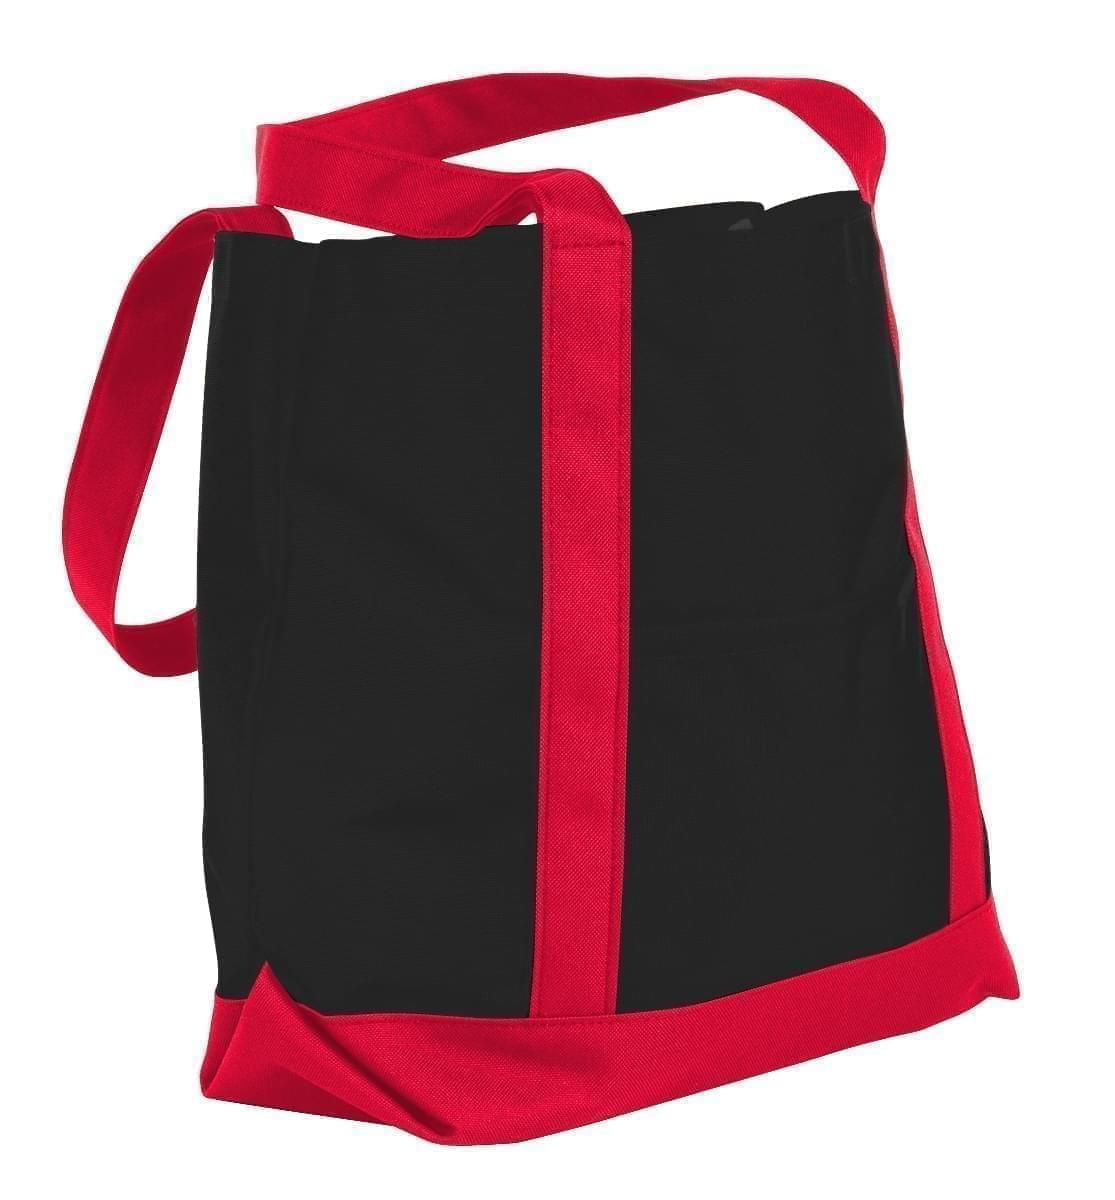 USA Made Canvas Fashion Tote Bags, Black-Red, XAACL1UAHL